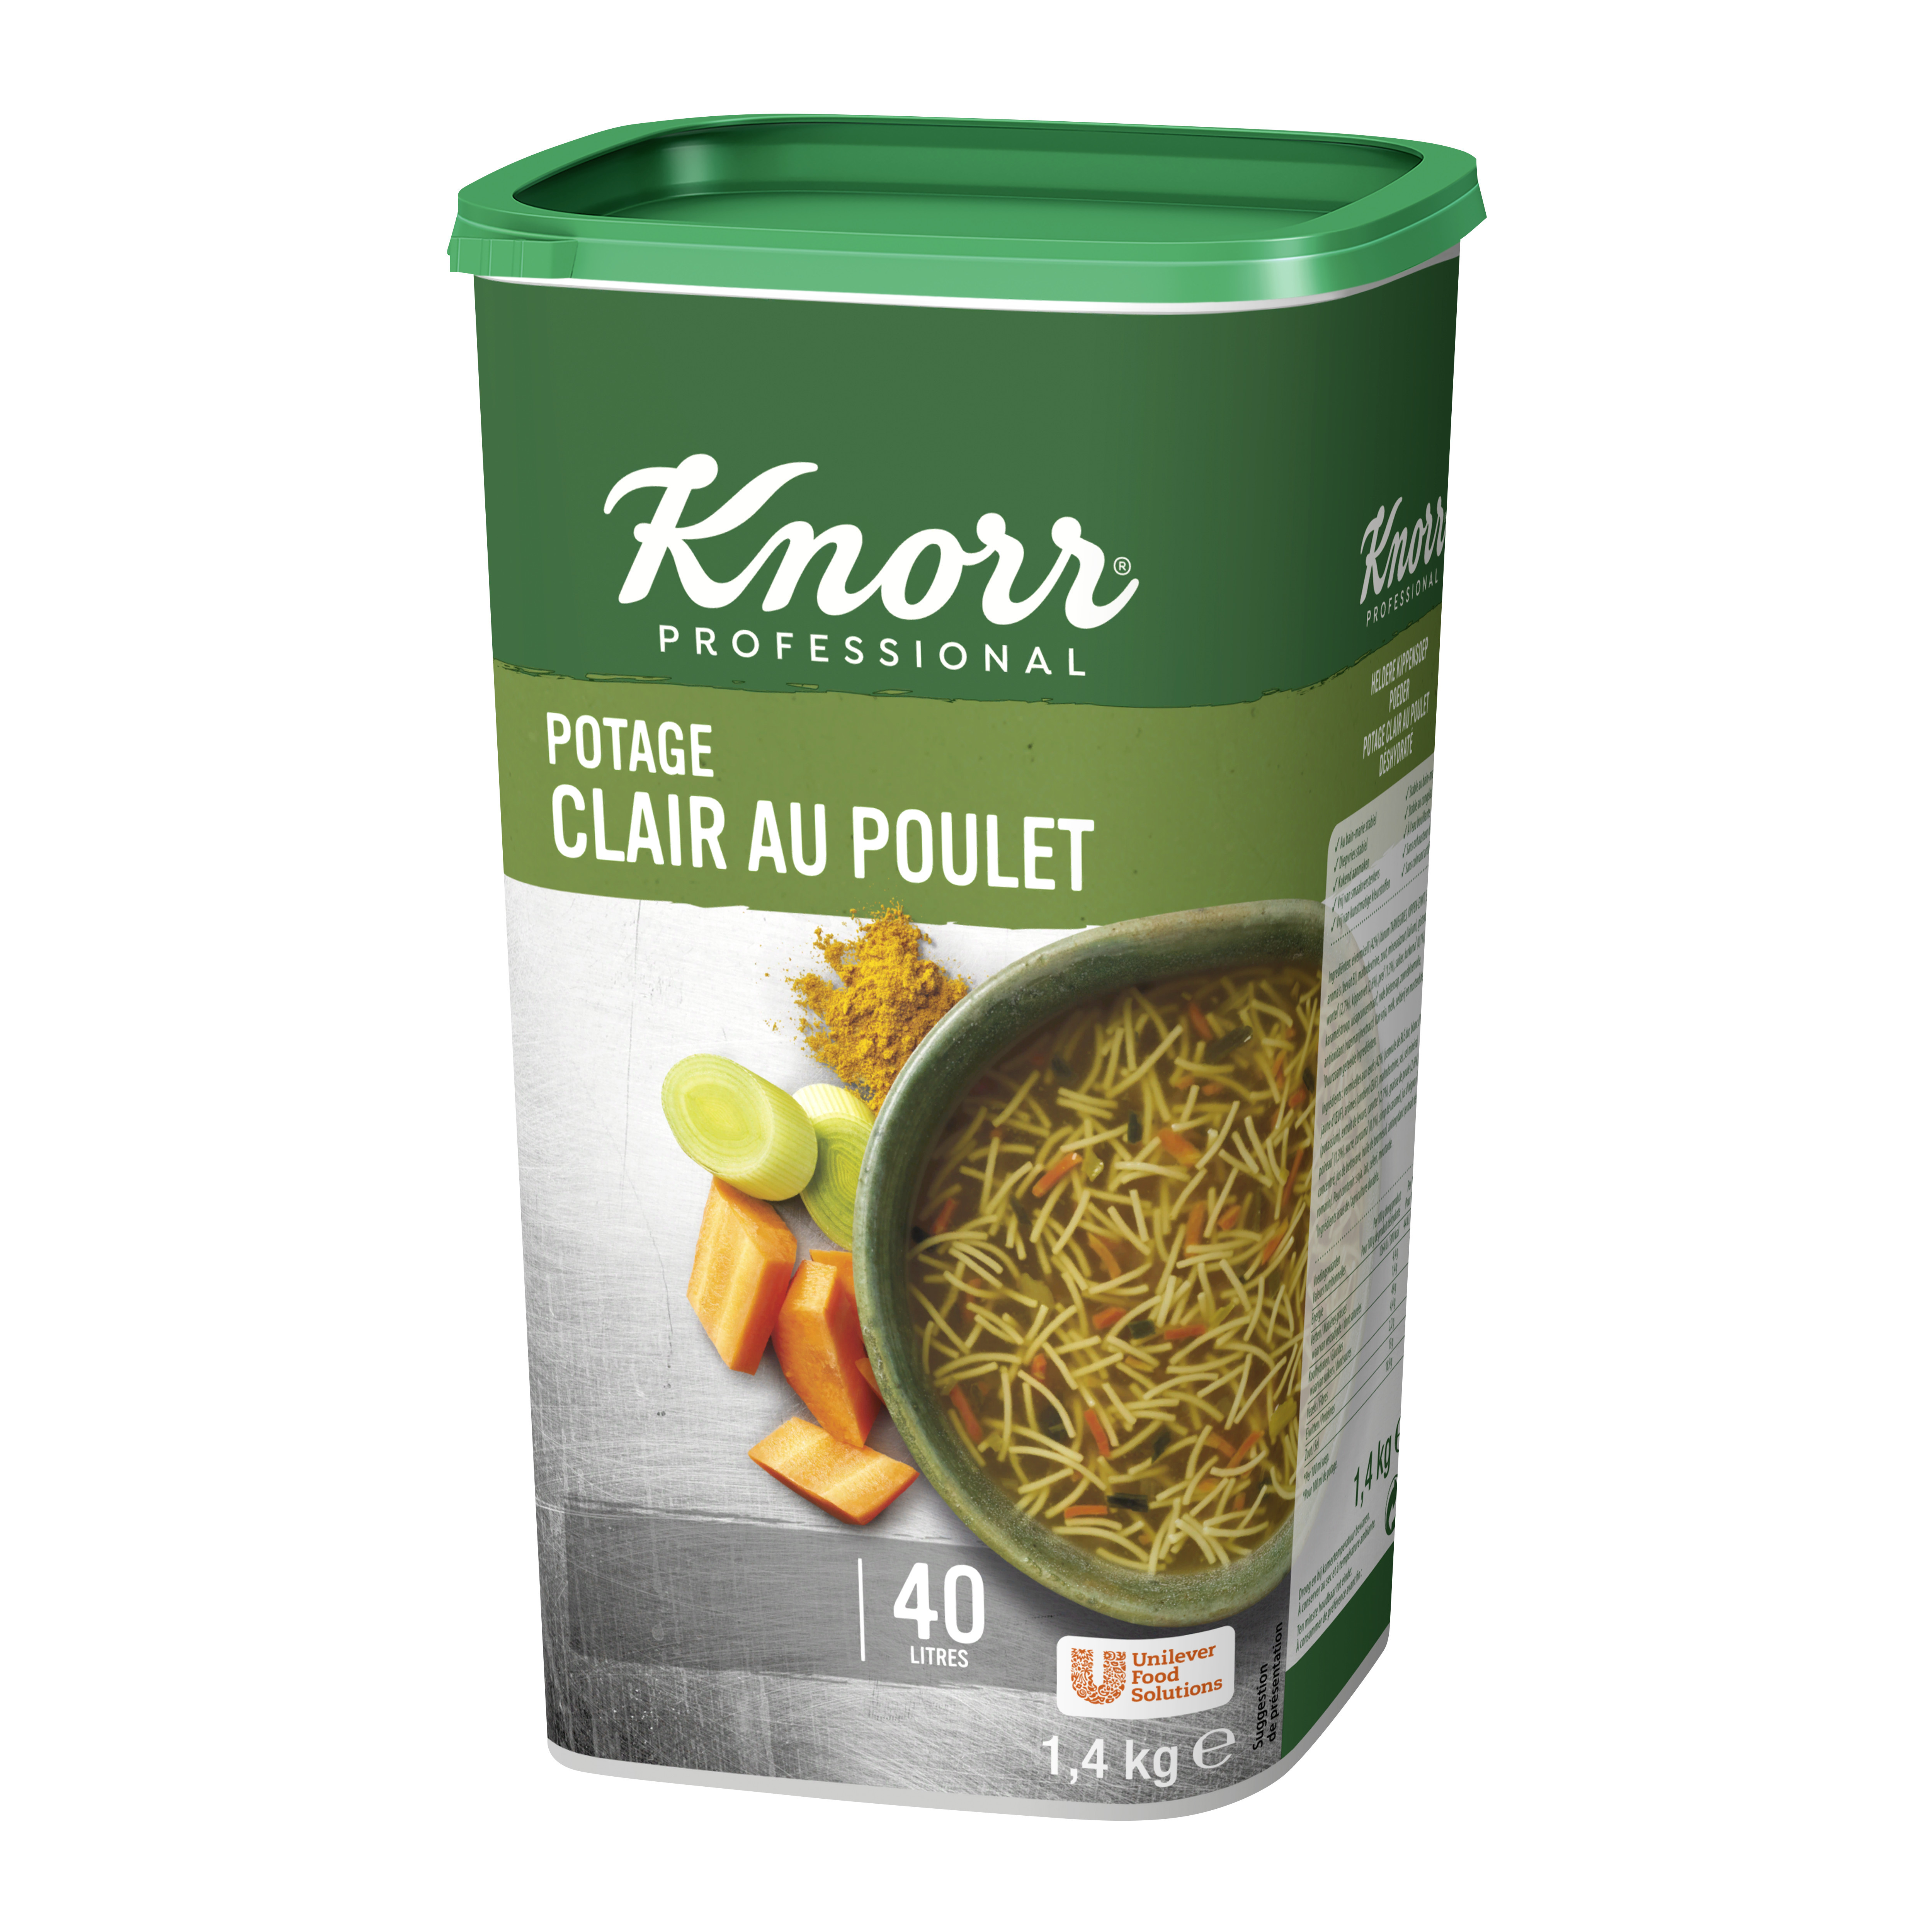 Knorr Soup double chicken 1.4kg Professional